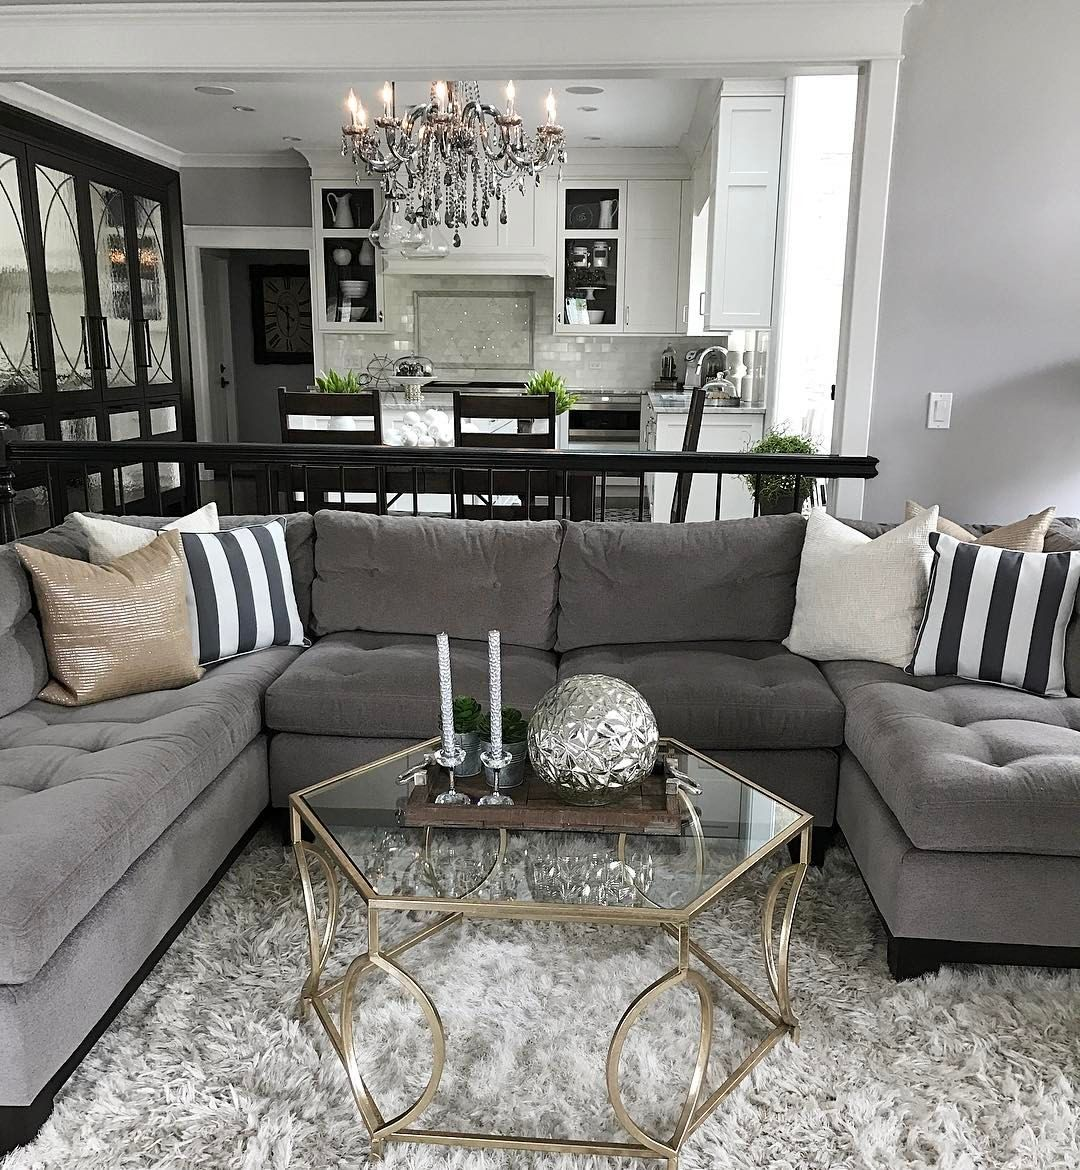 Change Up The Gray Couch With And Chic Black And White Str